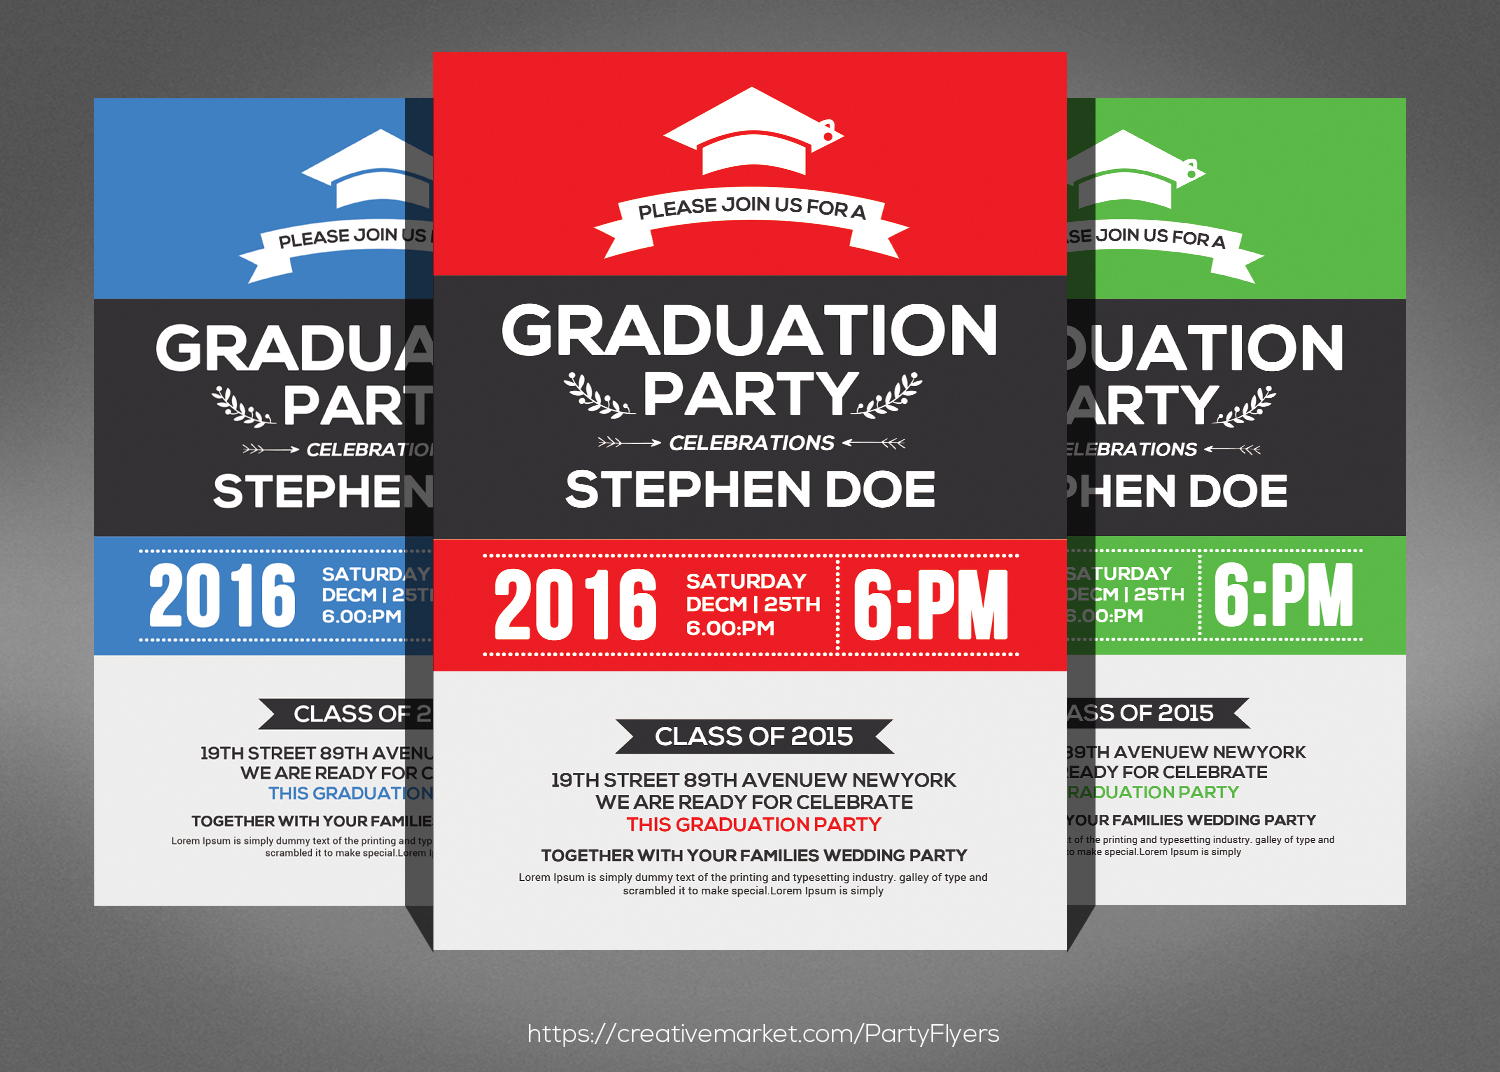 Dorable Graduation Party Invitations 2015 Elaboration - Invitations ...